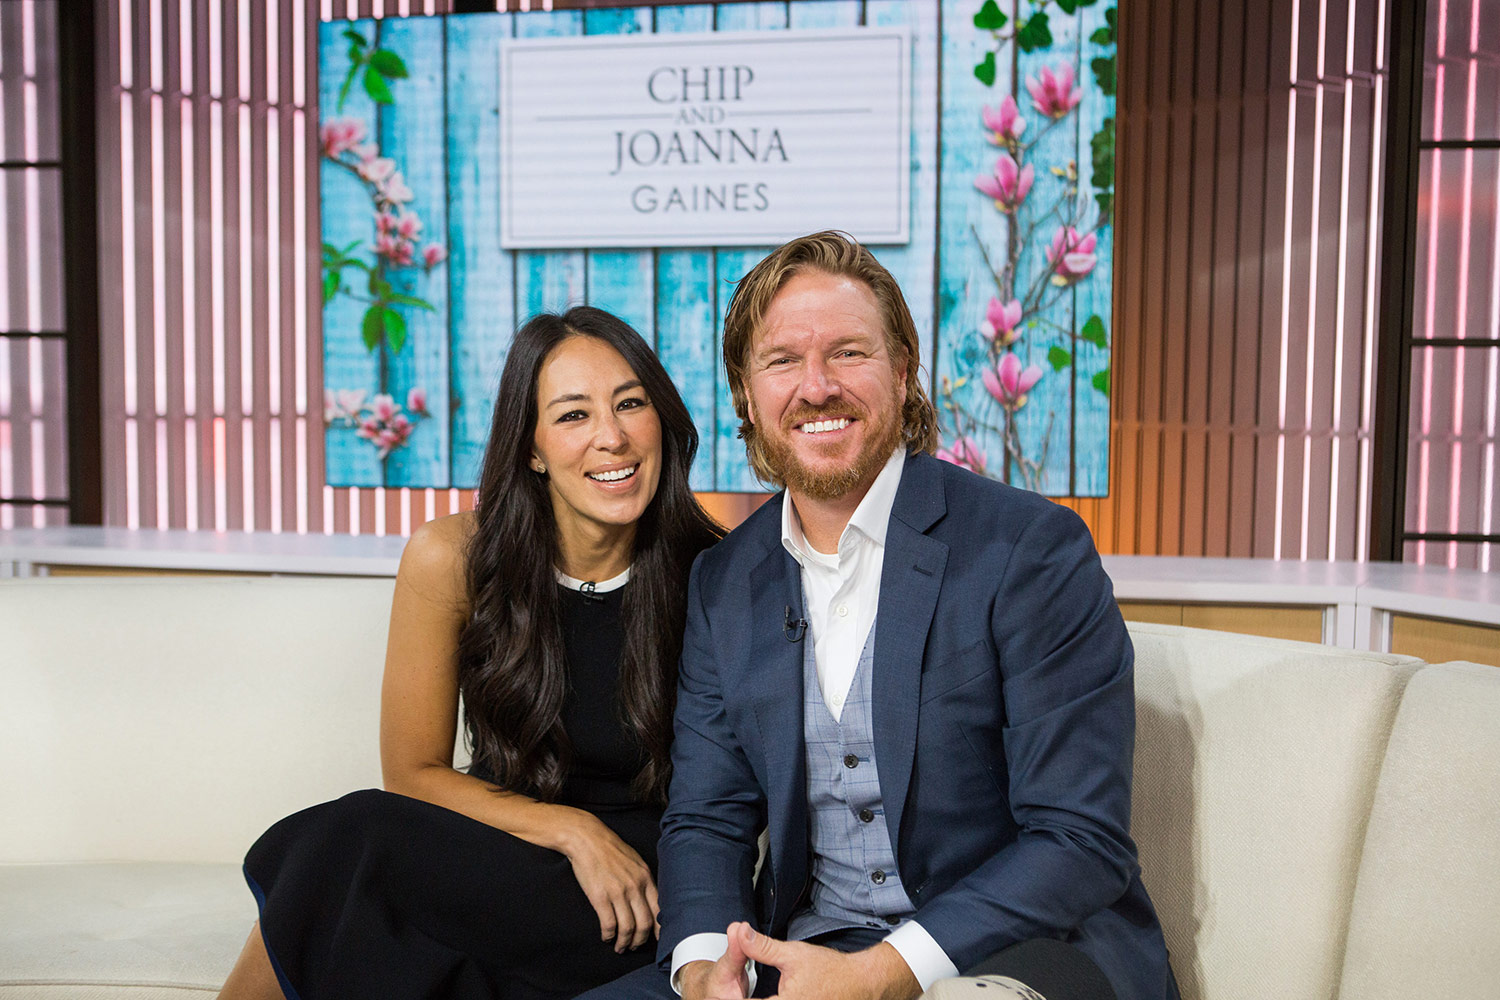 Chip and Joanna Gaines Today Show